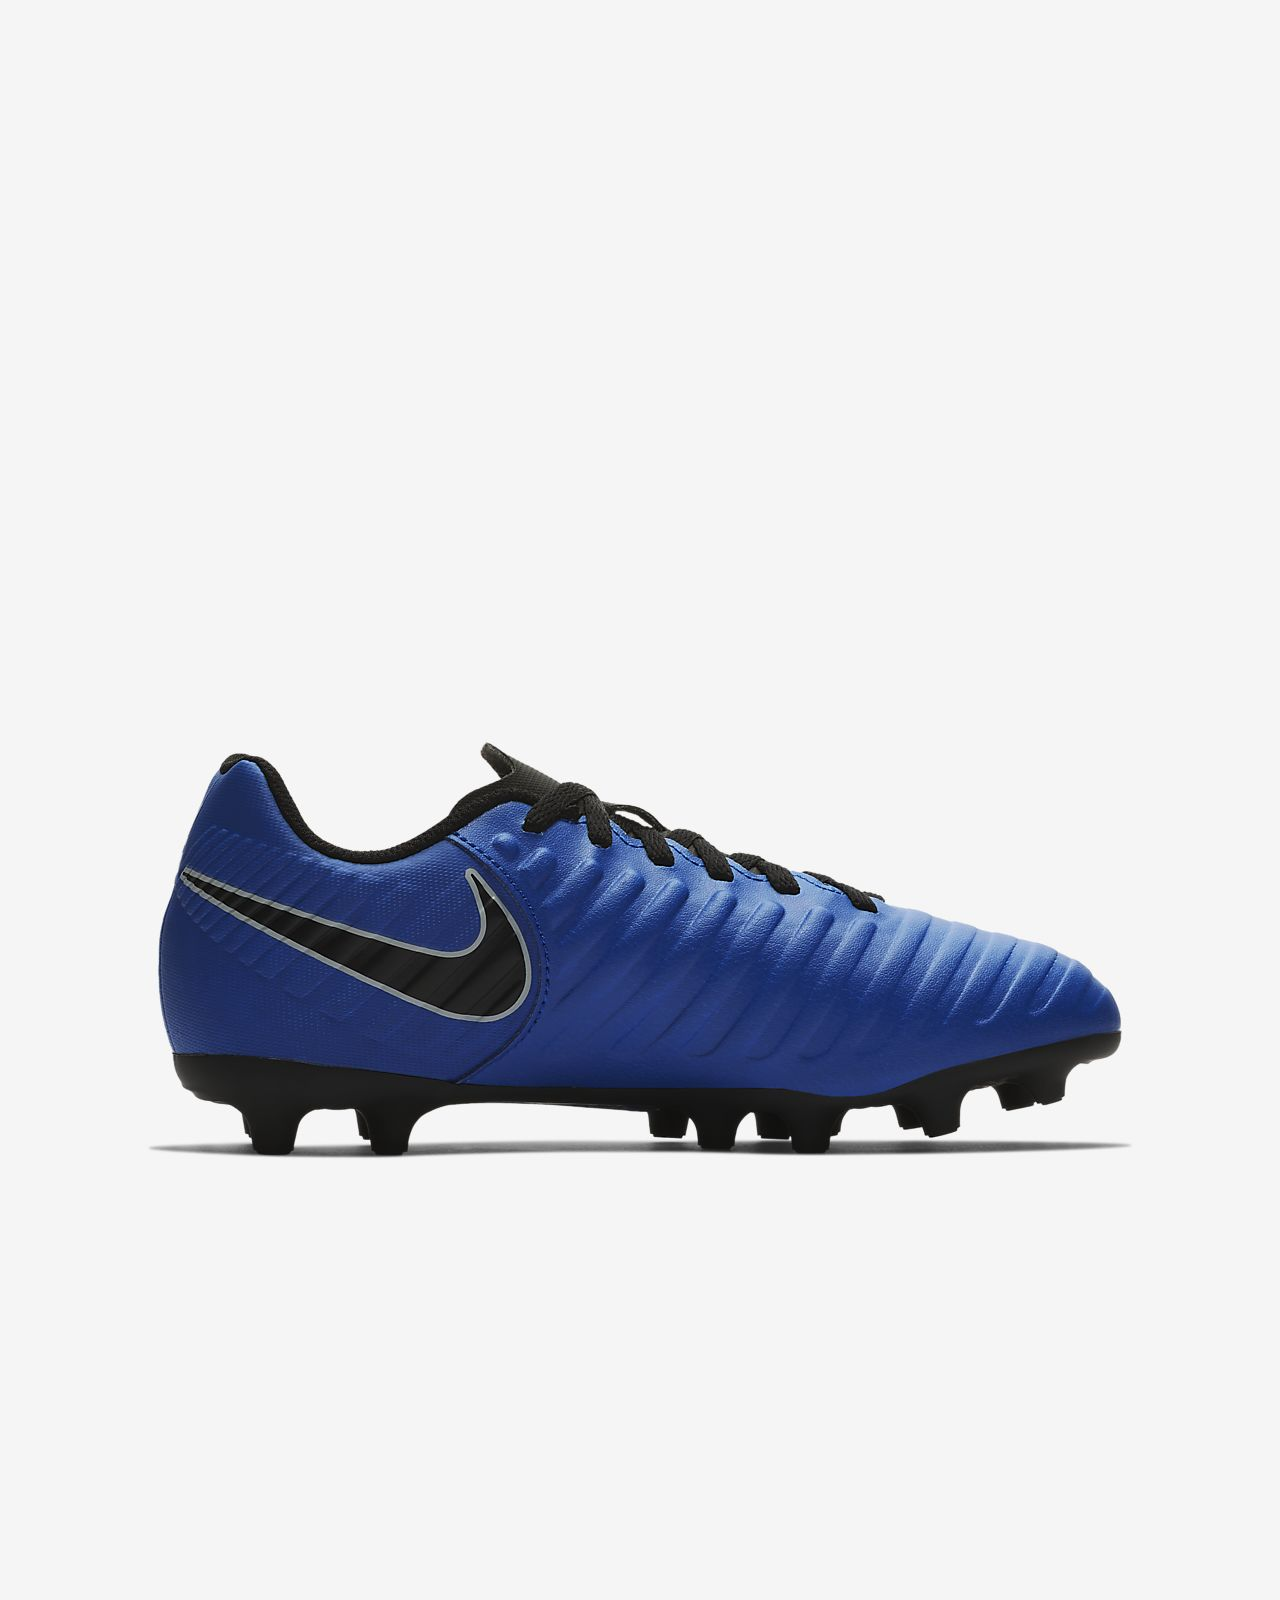 4d618b4b1 ... Nike Jr. Tiempo Legend VII Club Toddler Little Kids  Firm-Ground Soccer